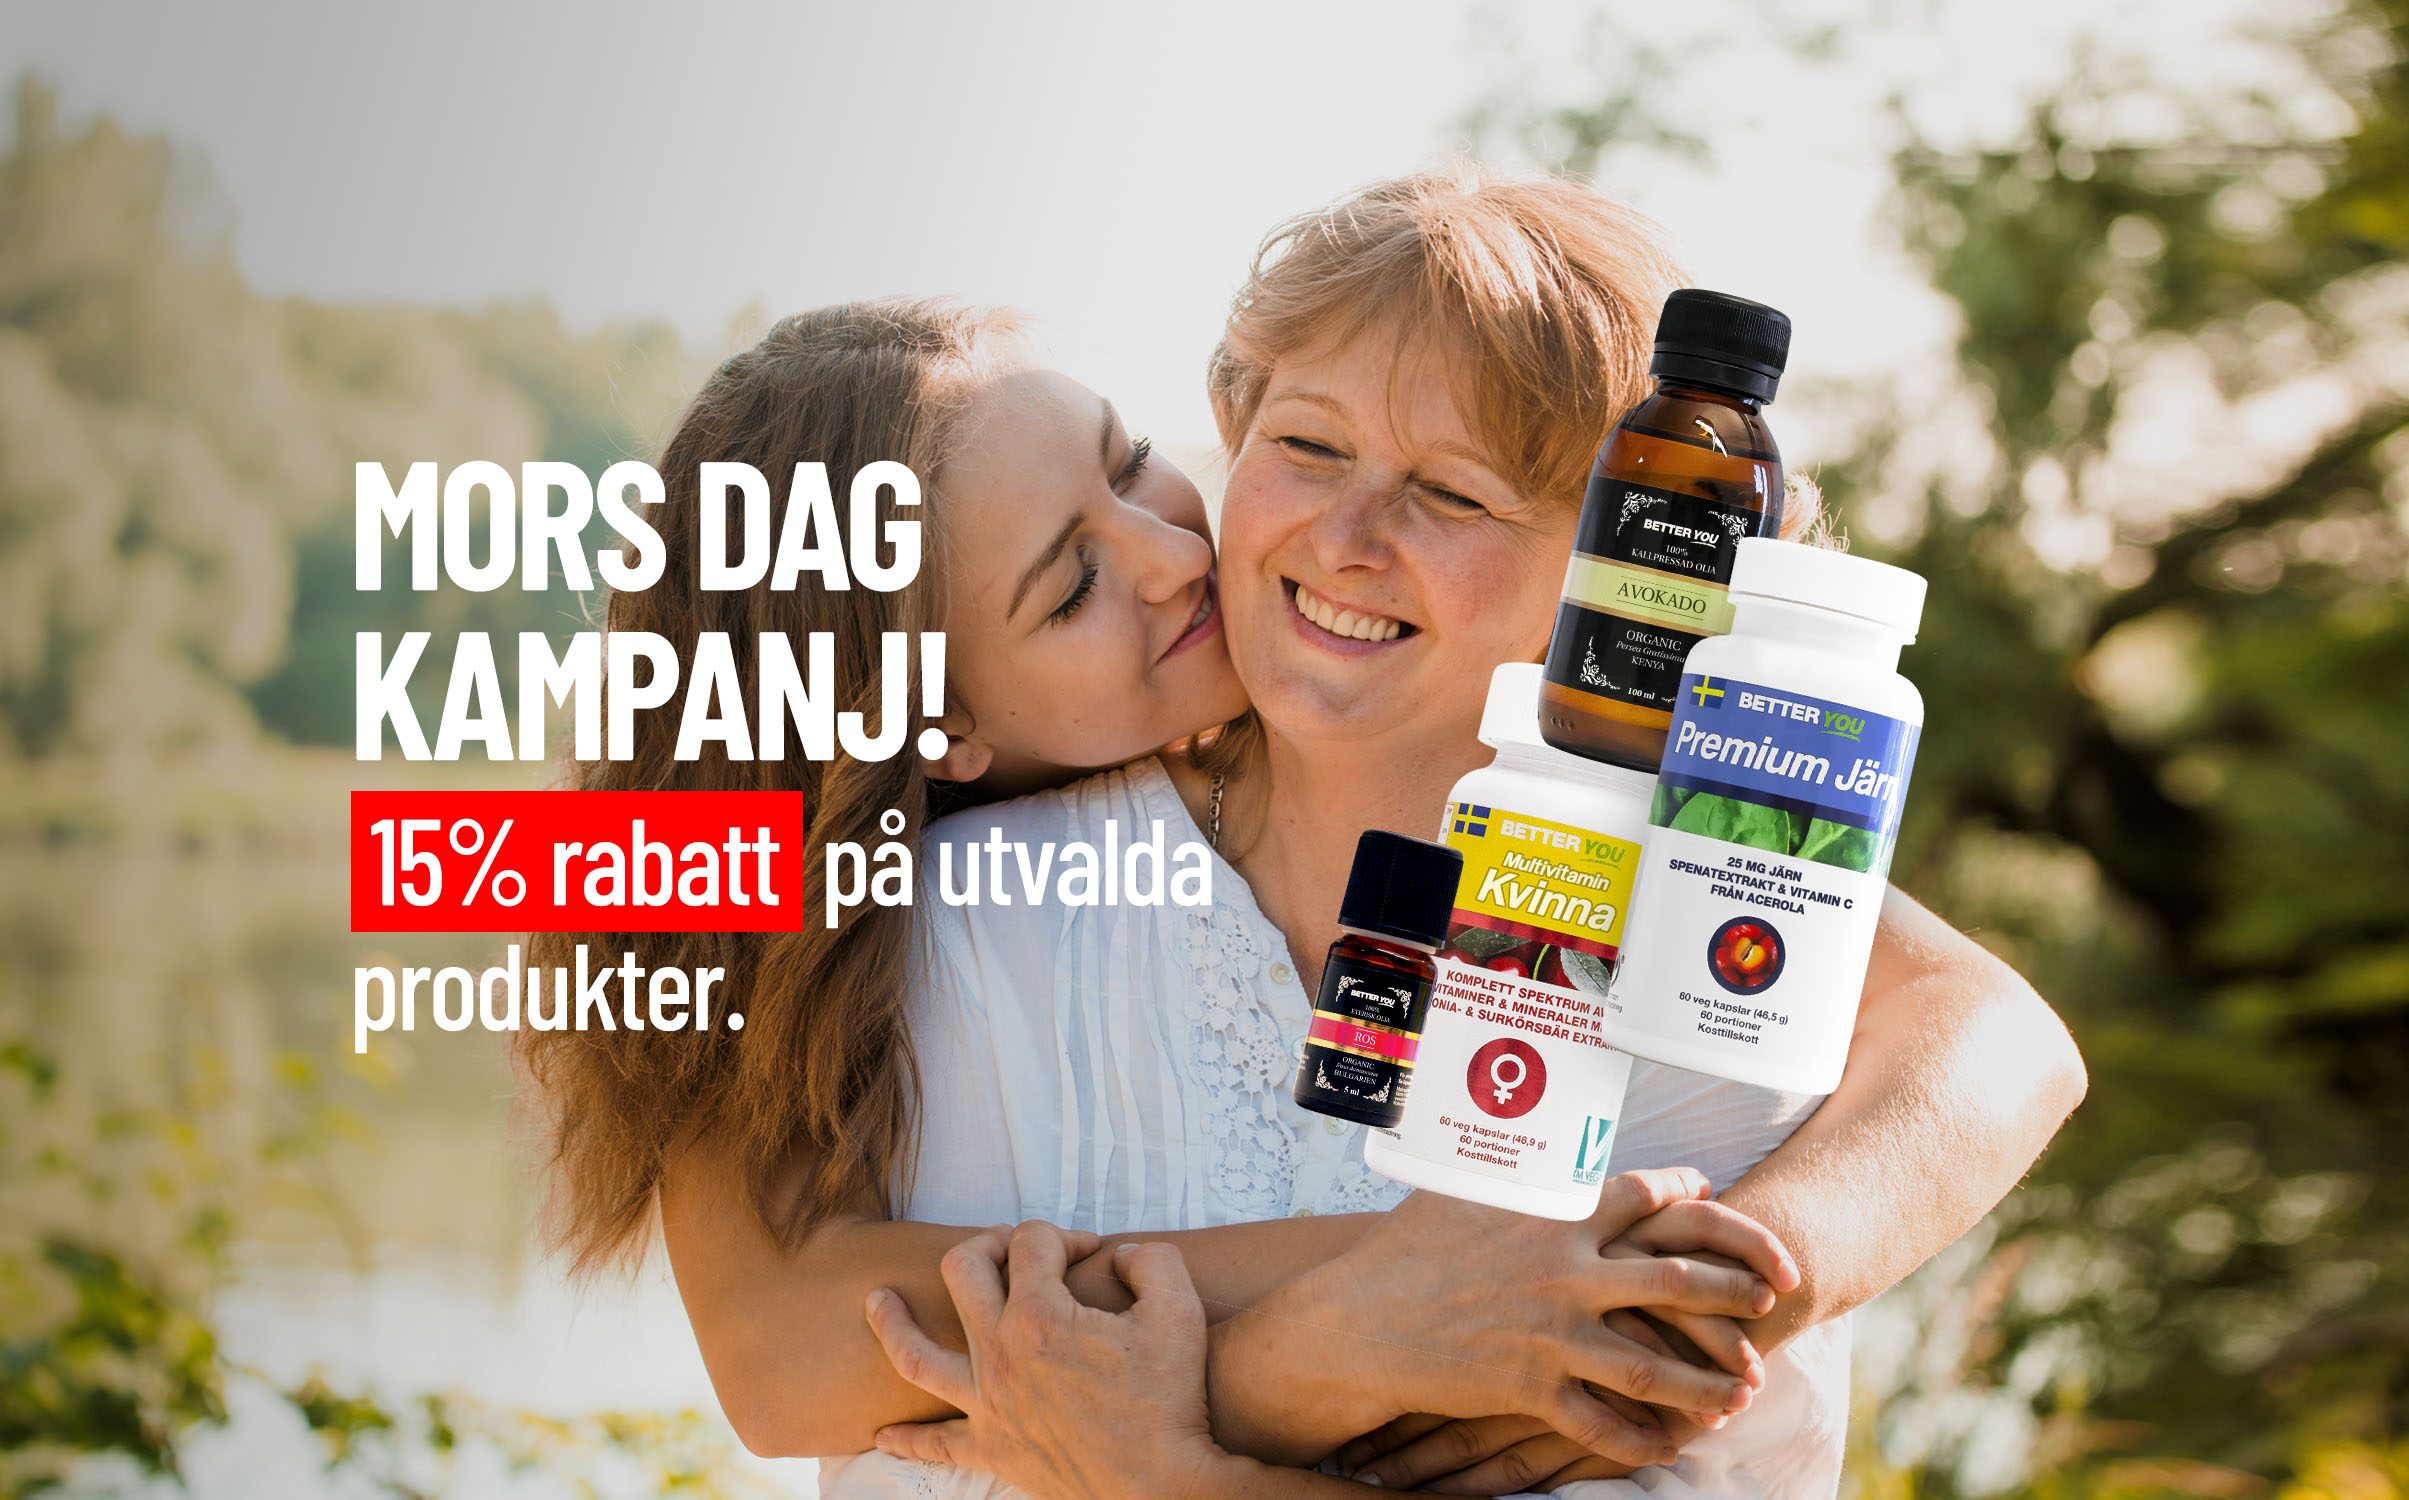 https://www.betteryou.se/pub_docs/files/Custom_Item_Images/Stora_snurr_1_mors_dag_kampanj2.jpg